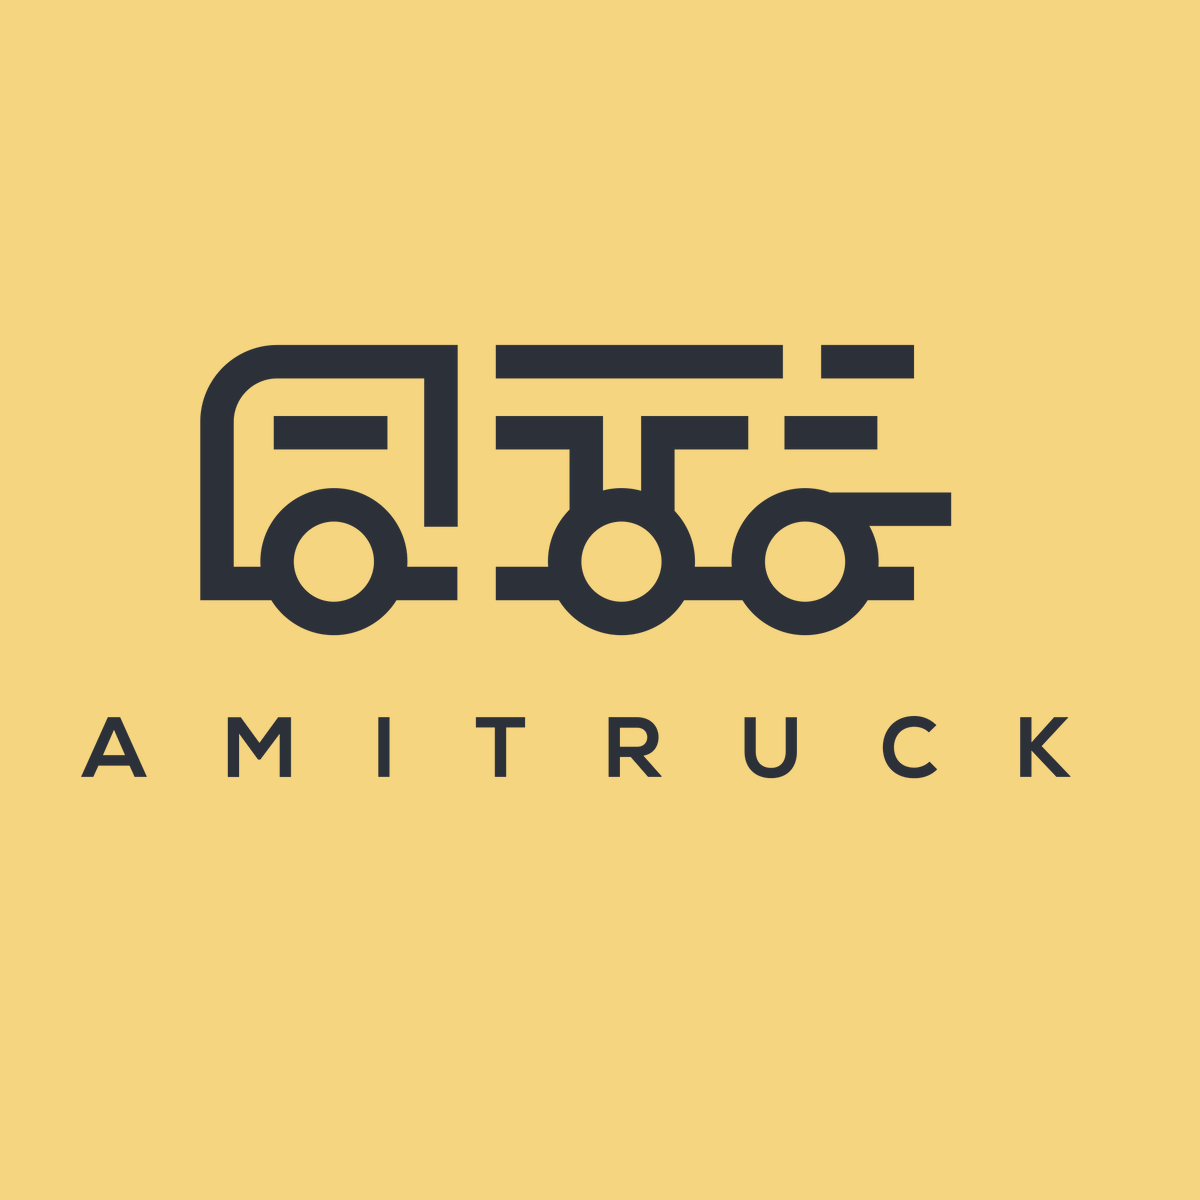 Amitruck, The Kenyan Based Logistics Marketplace Says It Has Experienced Massive Growth In One Year